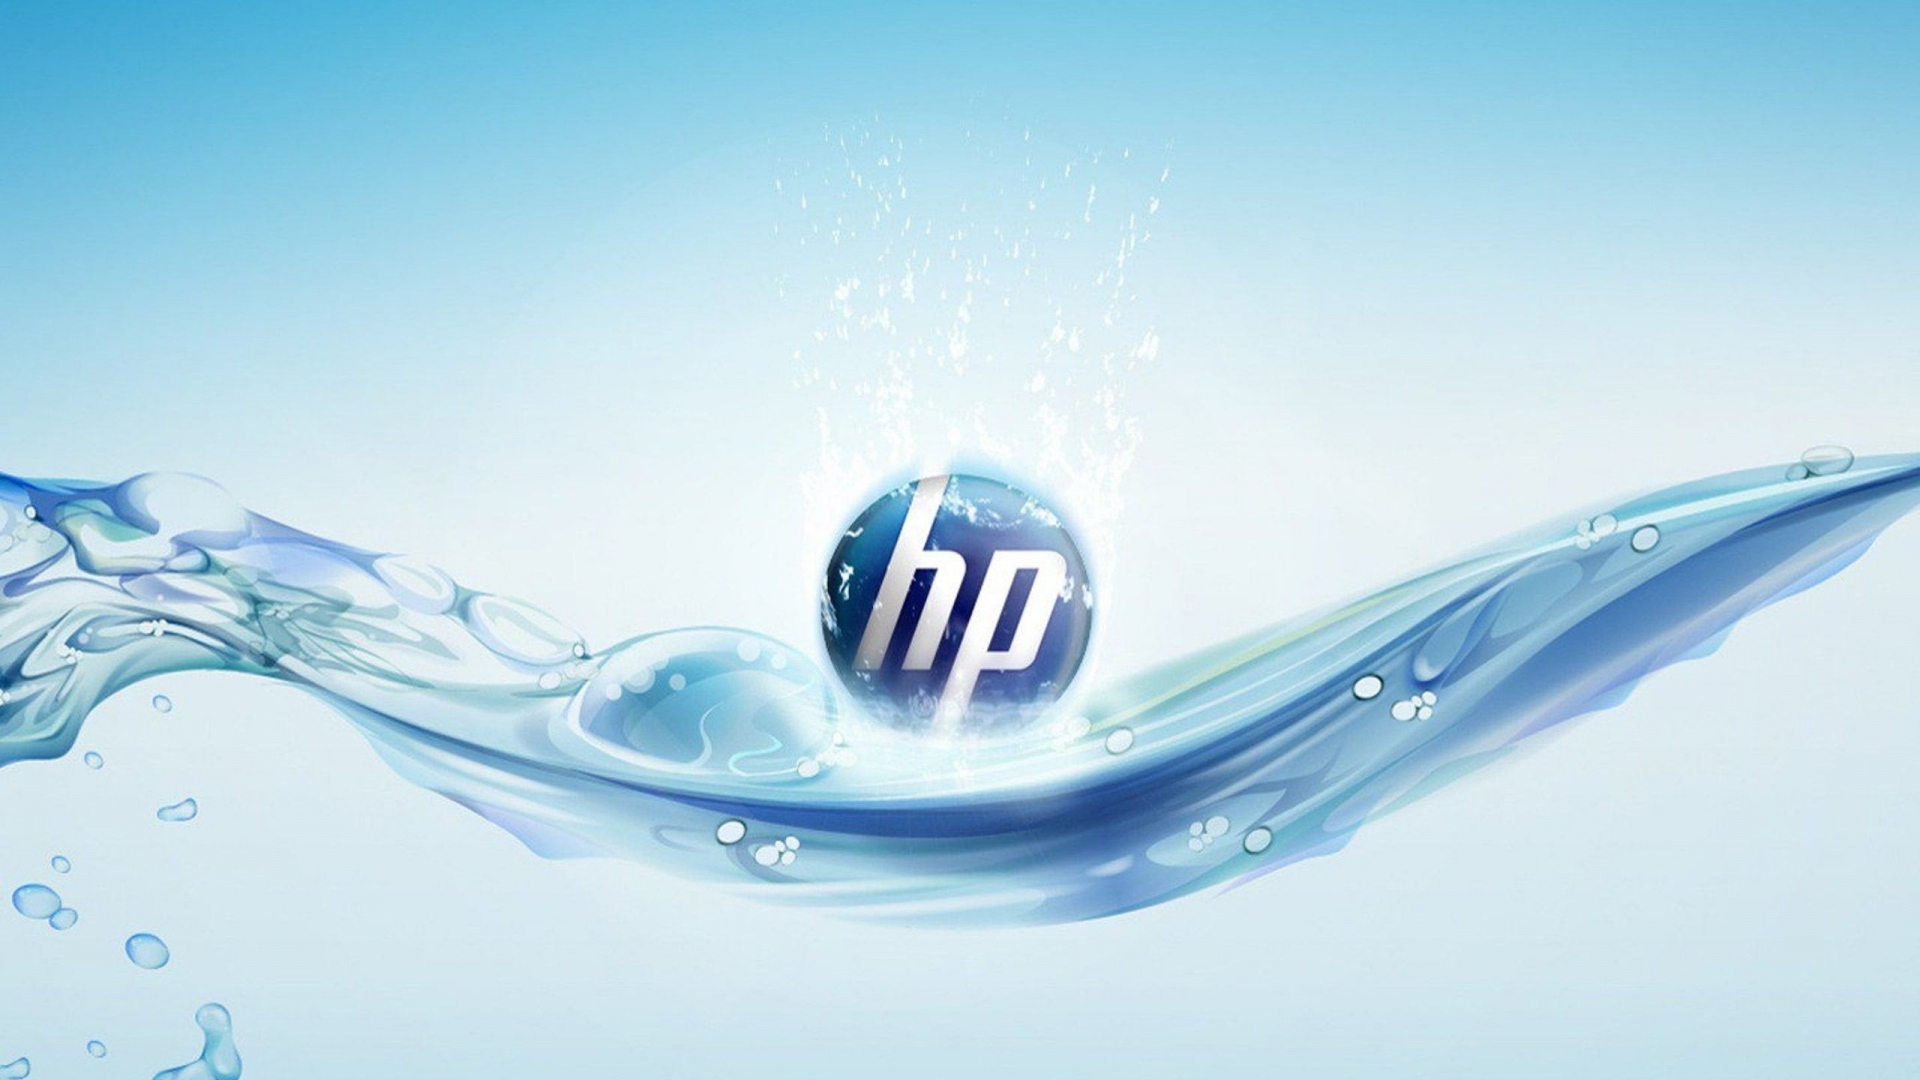 HP Wallpapers HD Download Free  PixelsTalk.Net